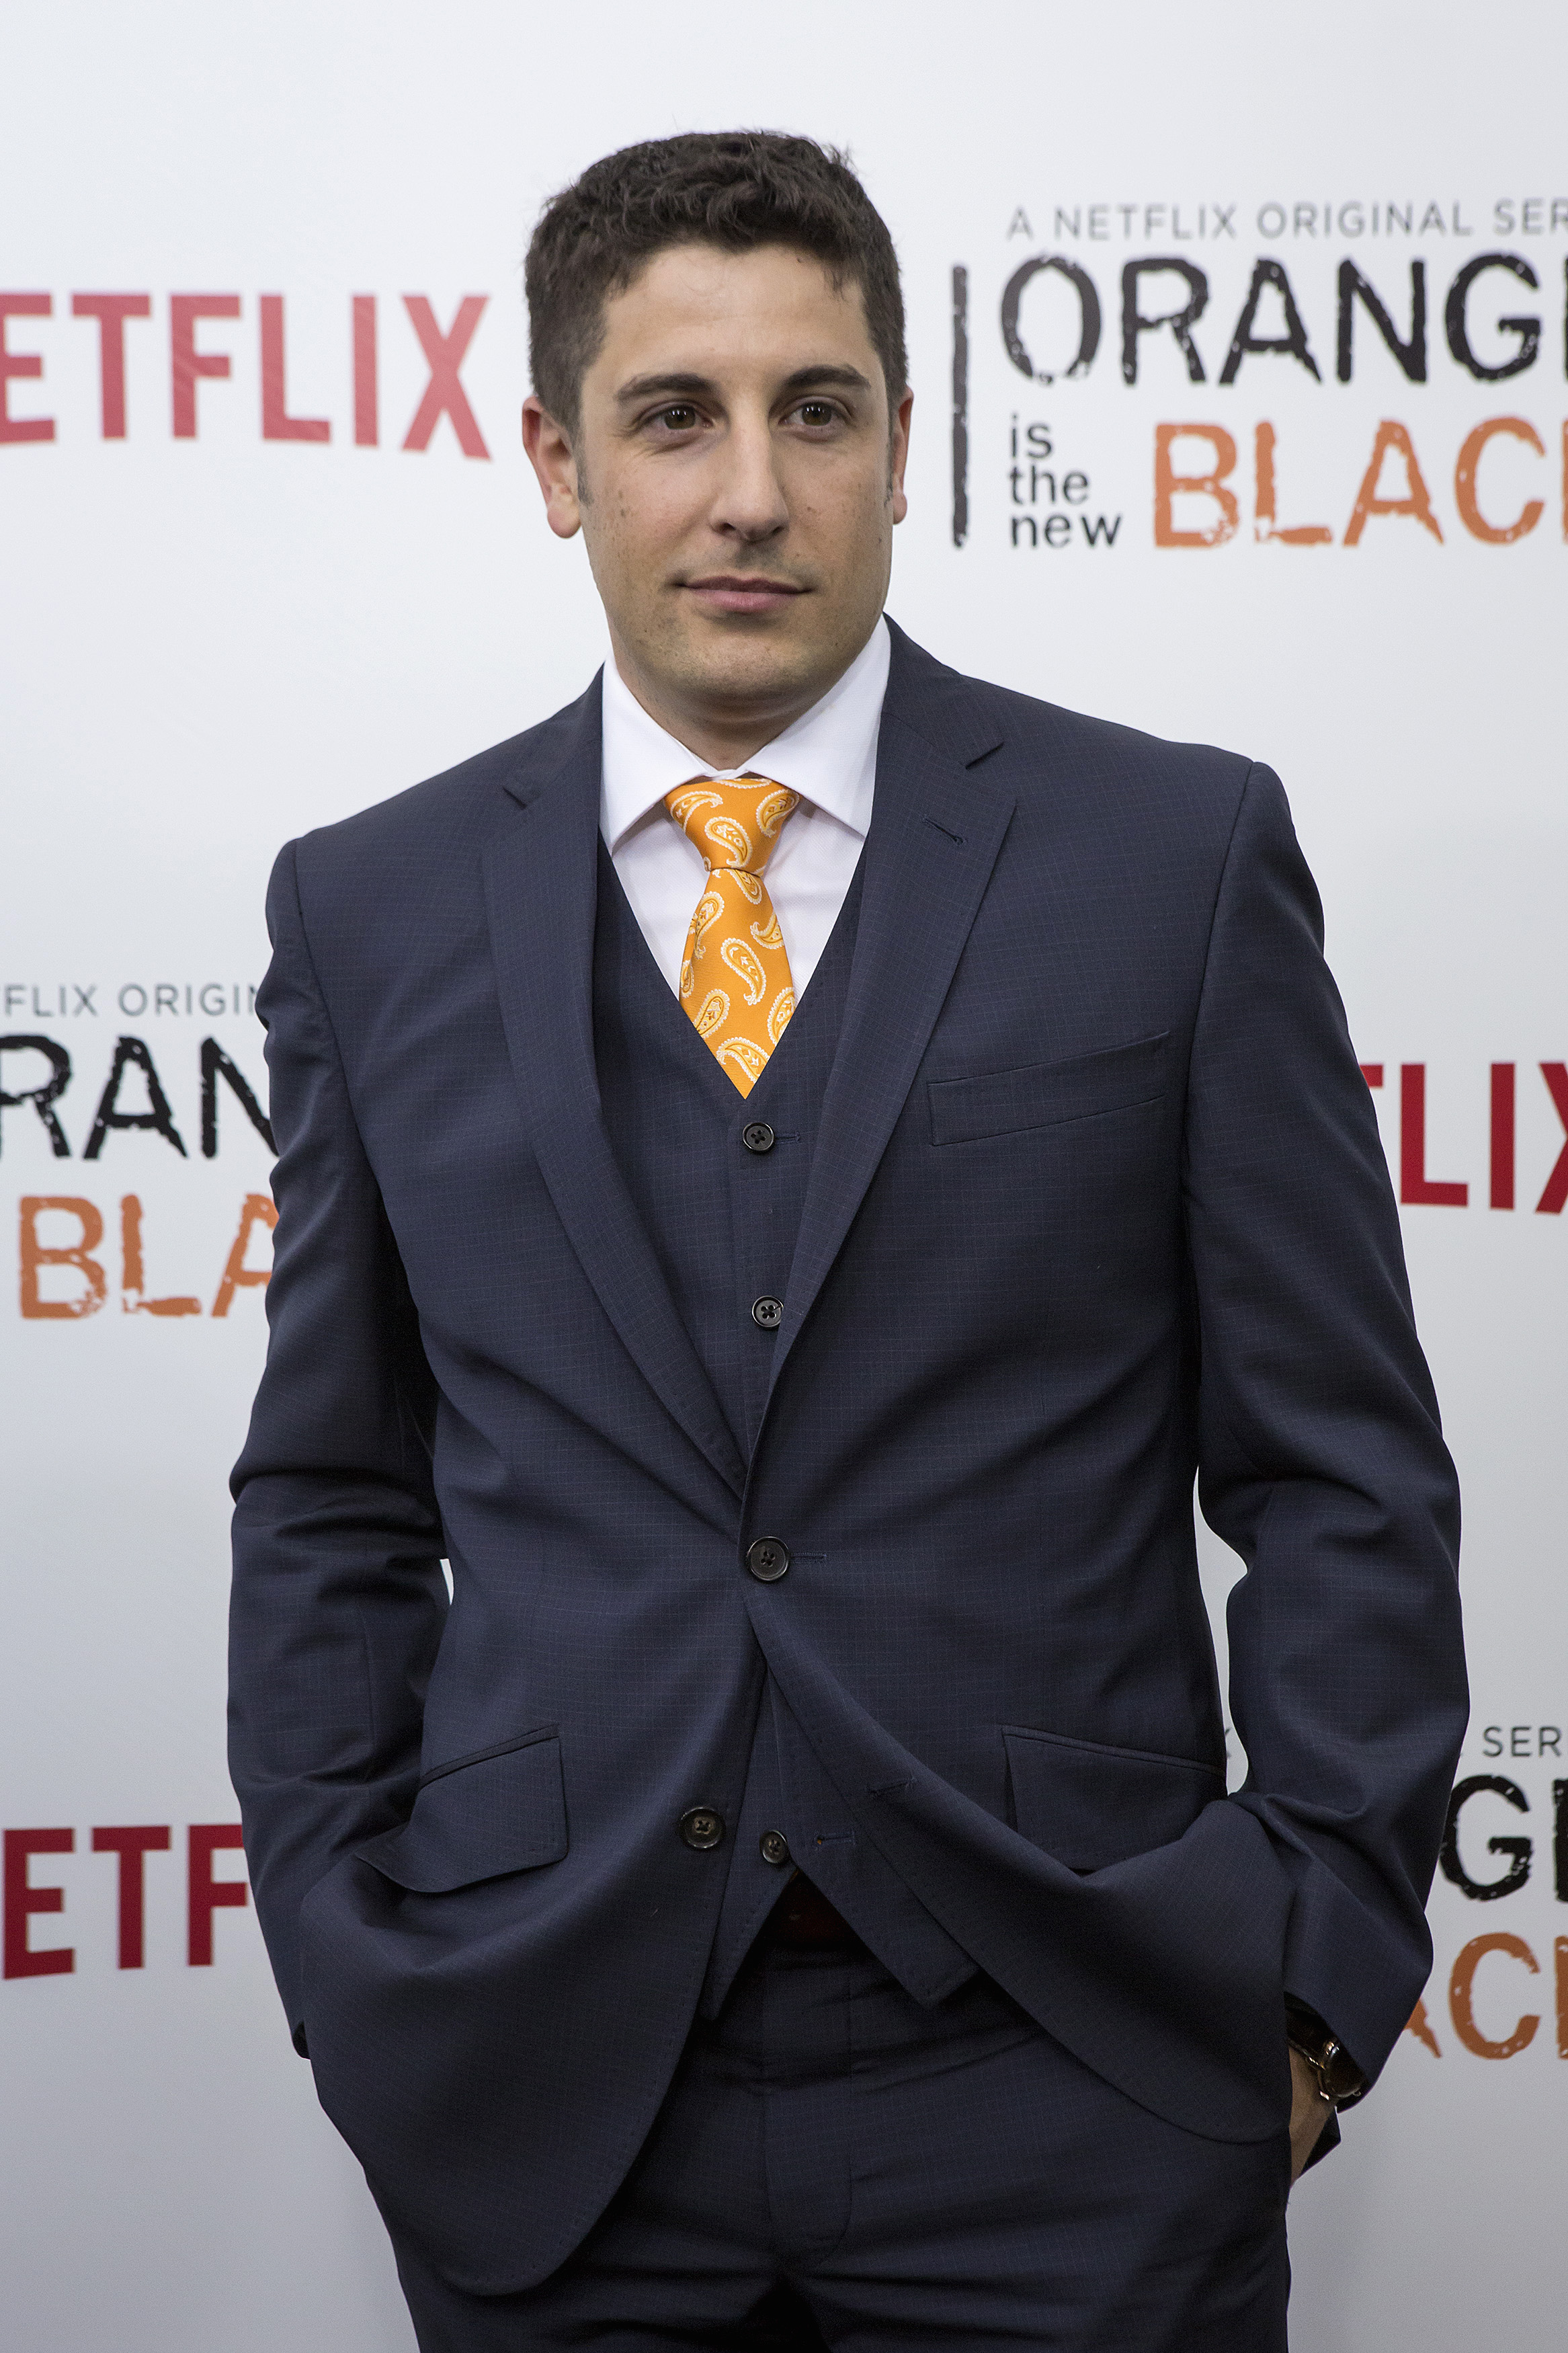 'American Pie' star Jason Biggs reveals he's been sober for one year after 'obsession with booze and drugs'